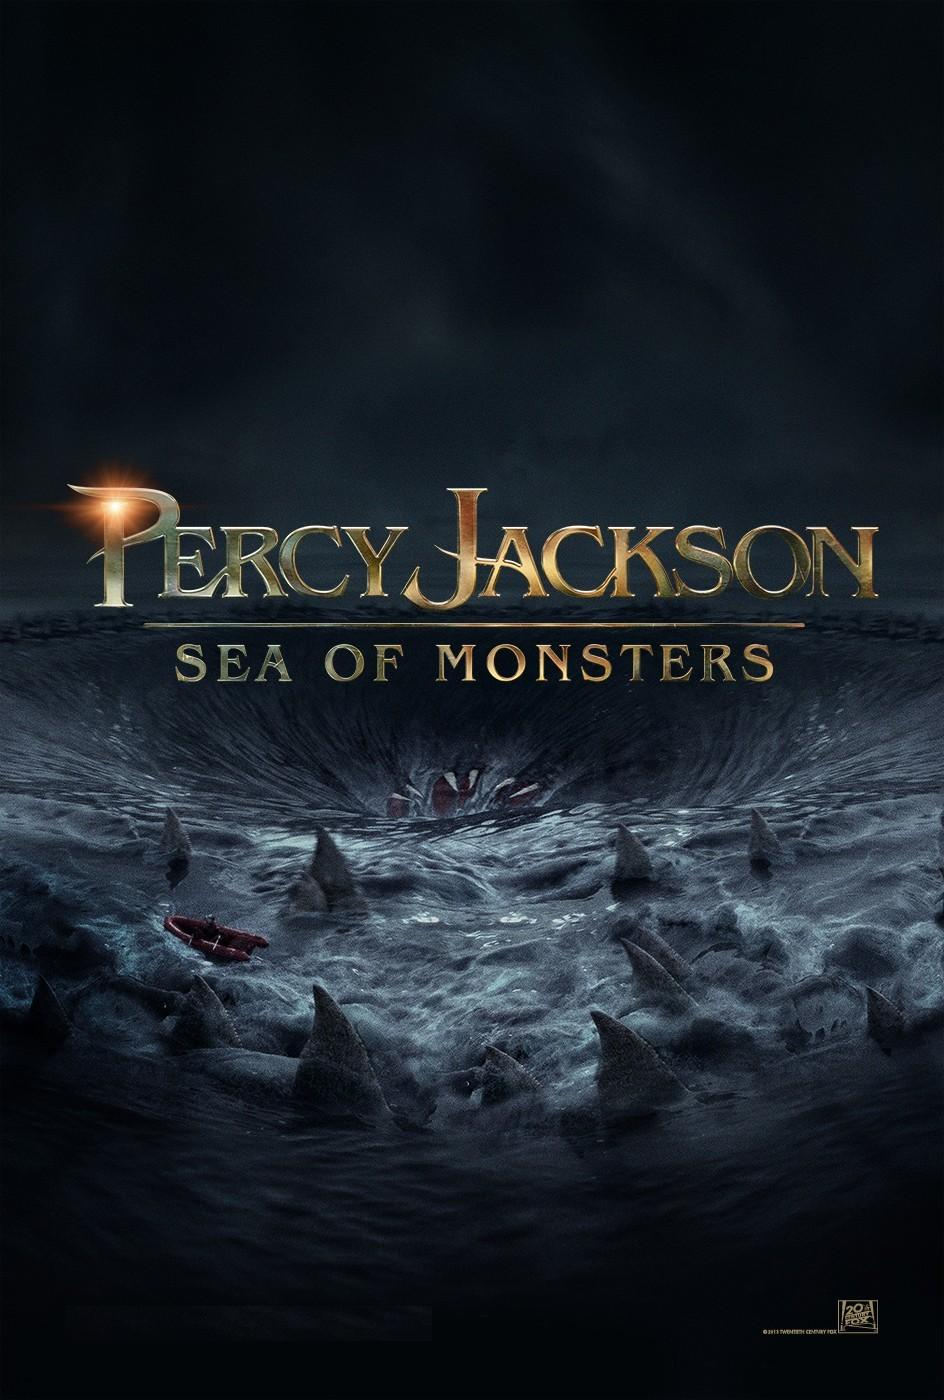 Percy Jackson: Sea of Monsters has a poster & trailer ...